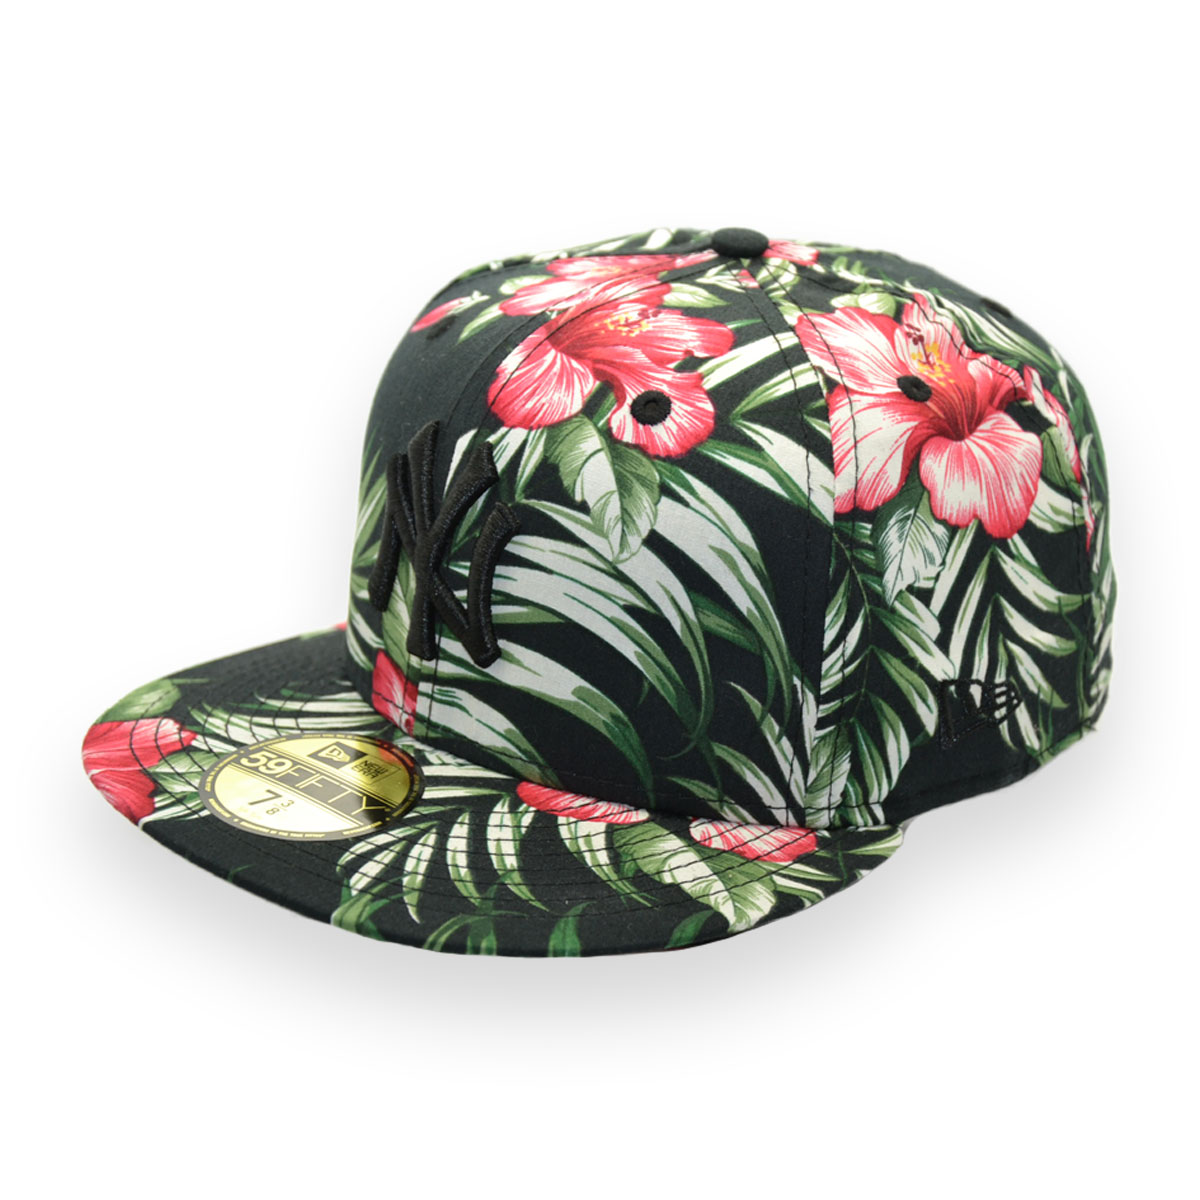 038d8dc5af4ee NEW ERA JAPAN NEW YORK YANKEES ALOHA FLORAL 59FIFTY MLB CAP - MyCraze